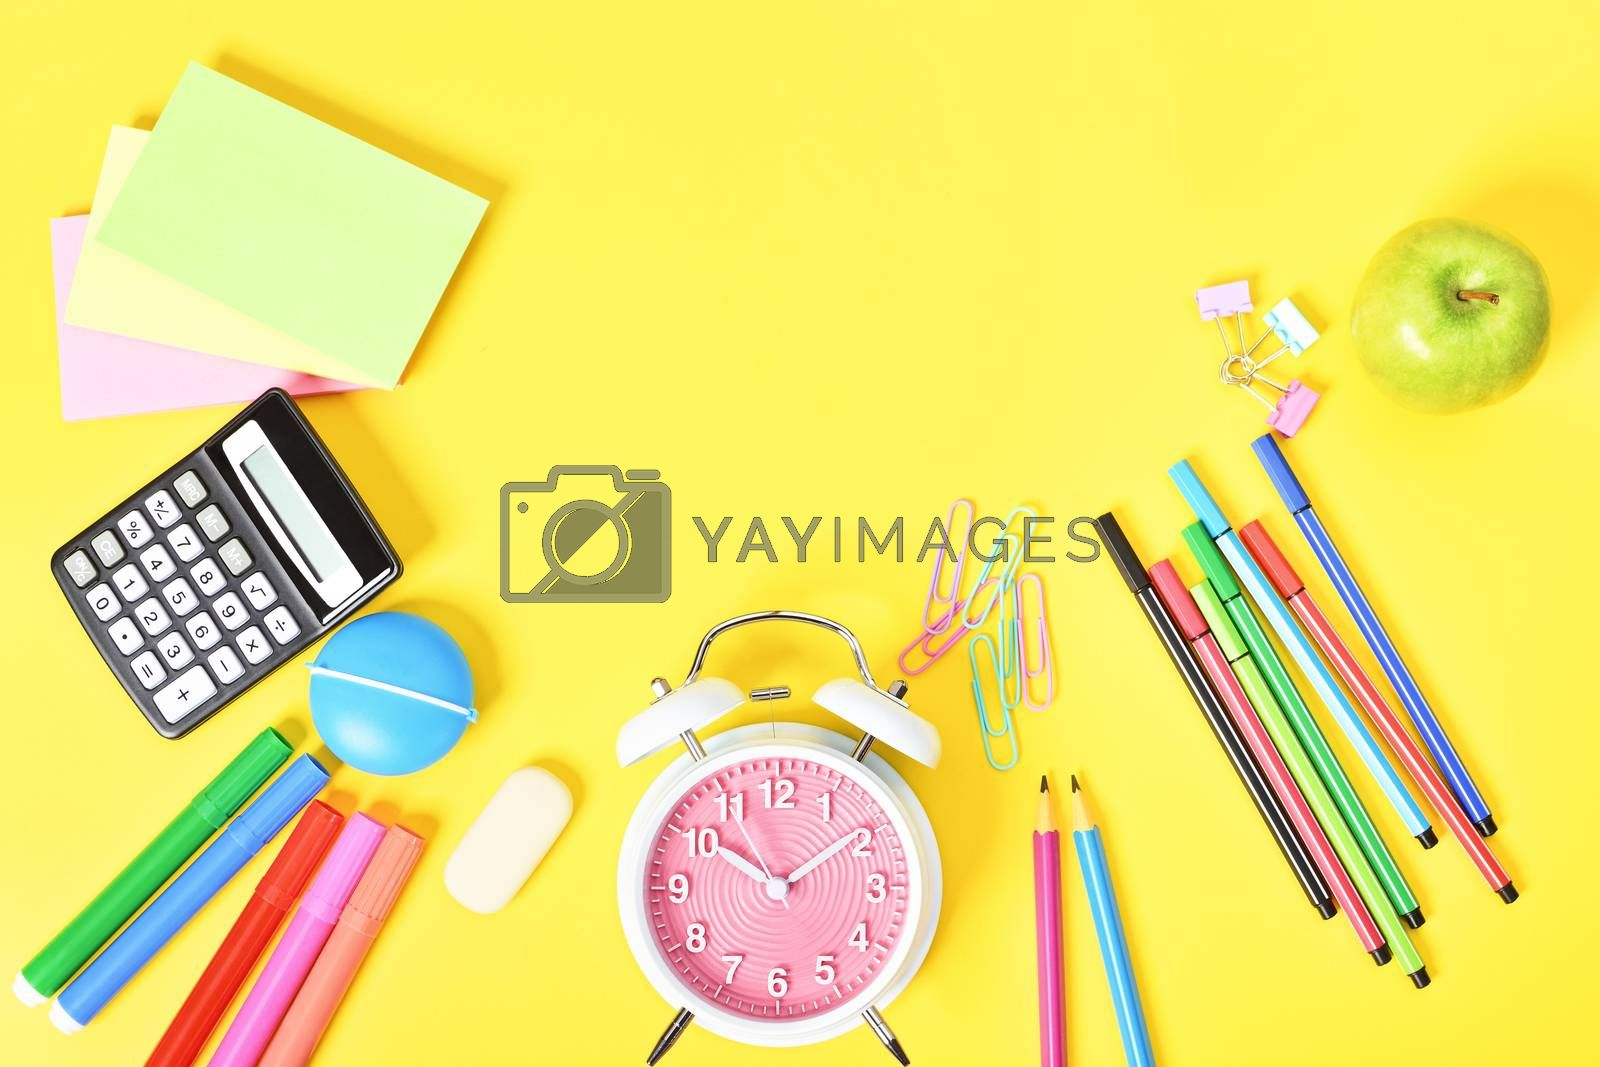 Fun school stationary scattered at the bottom on yellow background.